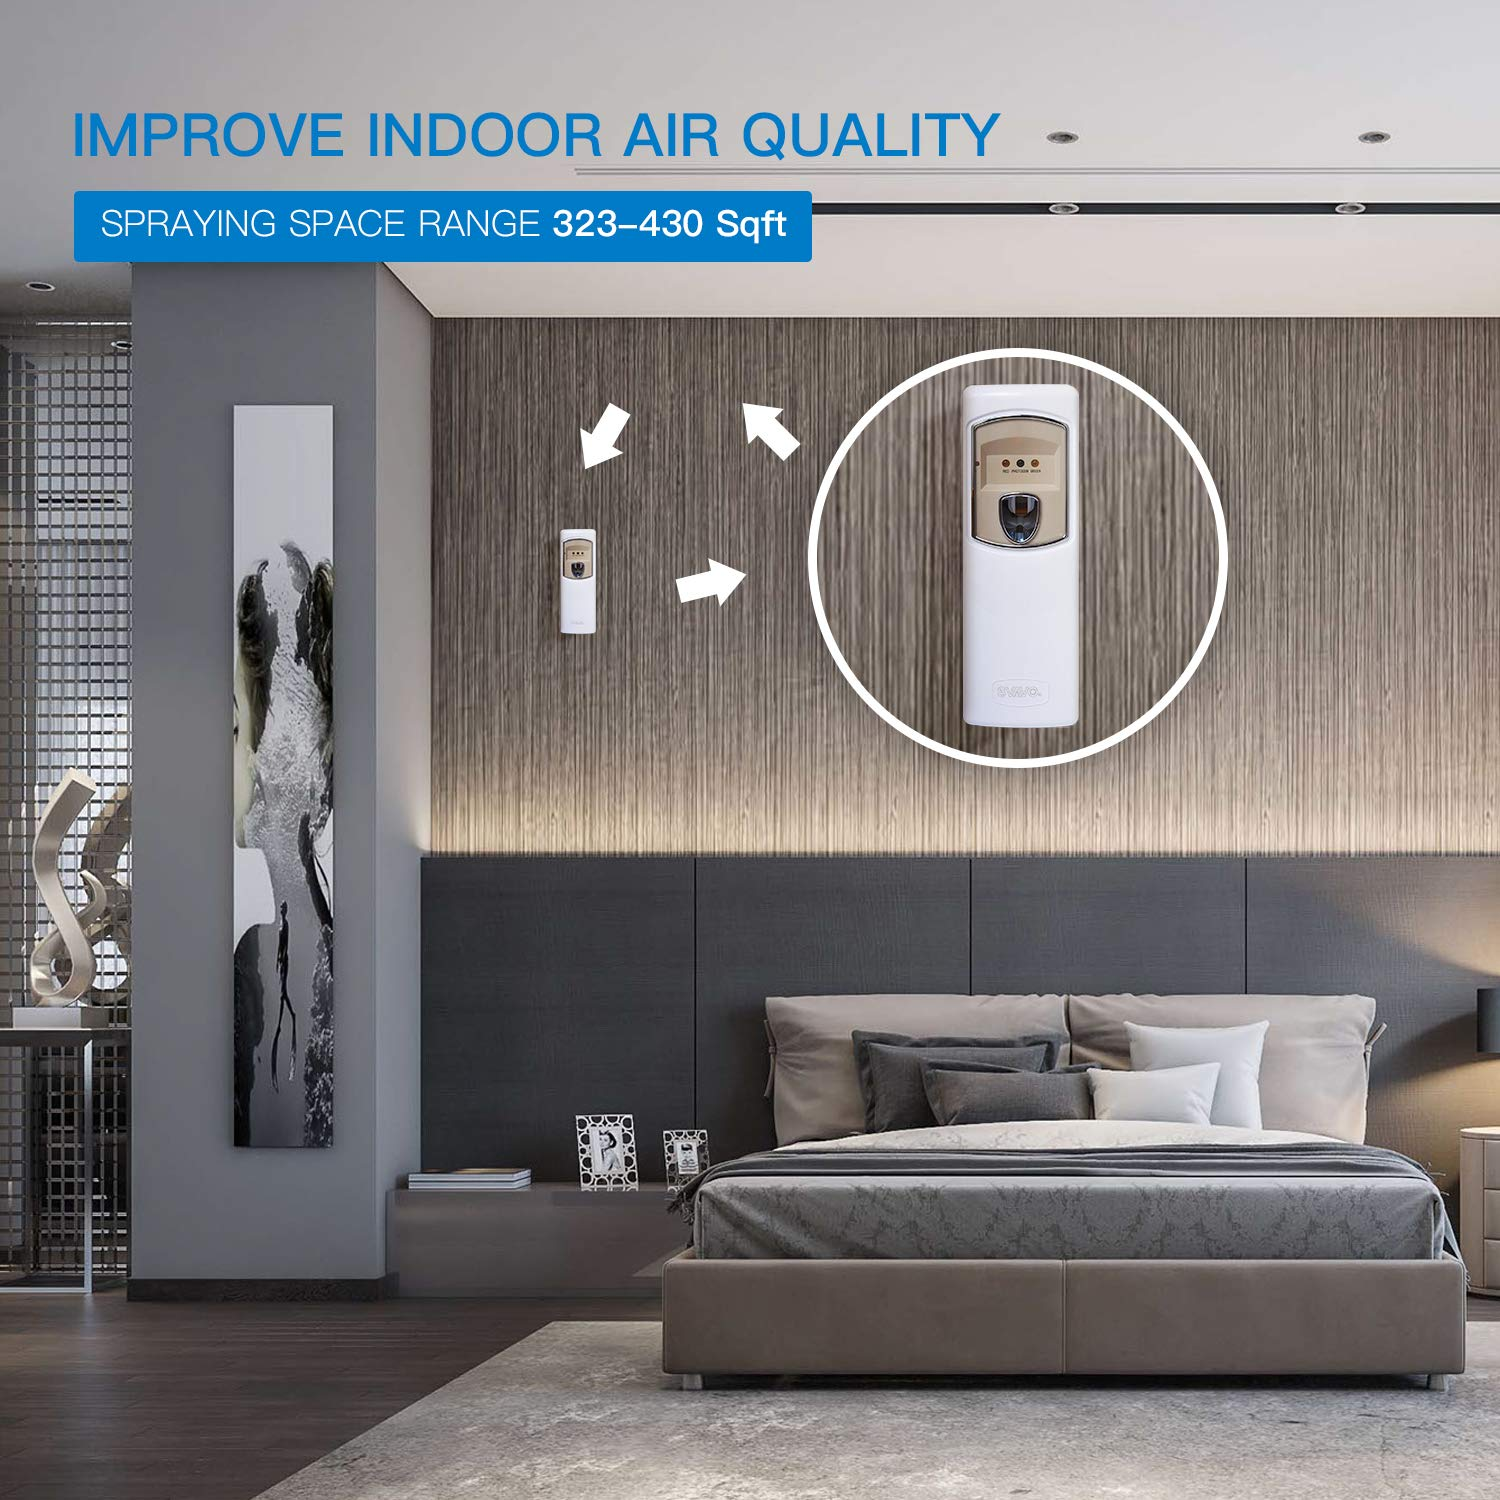 SVAVO Automatic Air Freshener Dispenser - Wall Mounted/Free Standing Auto Aerosol Spray Dispenser Programmable Fragrance Dispenser for Indoor-Bedroom, Hotel, Office, Commercial Place, White by SVAVO (Image #5)